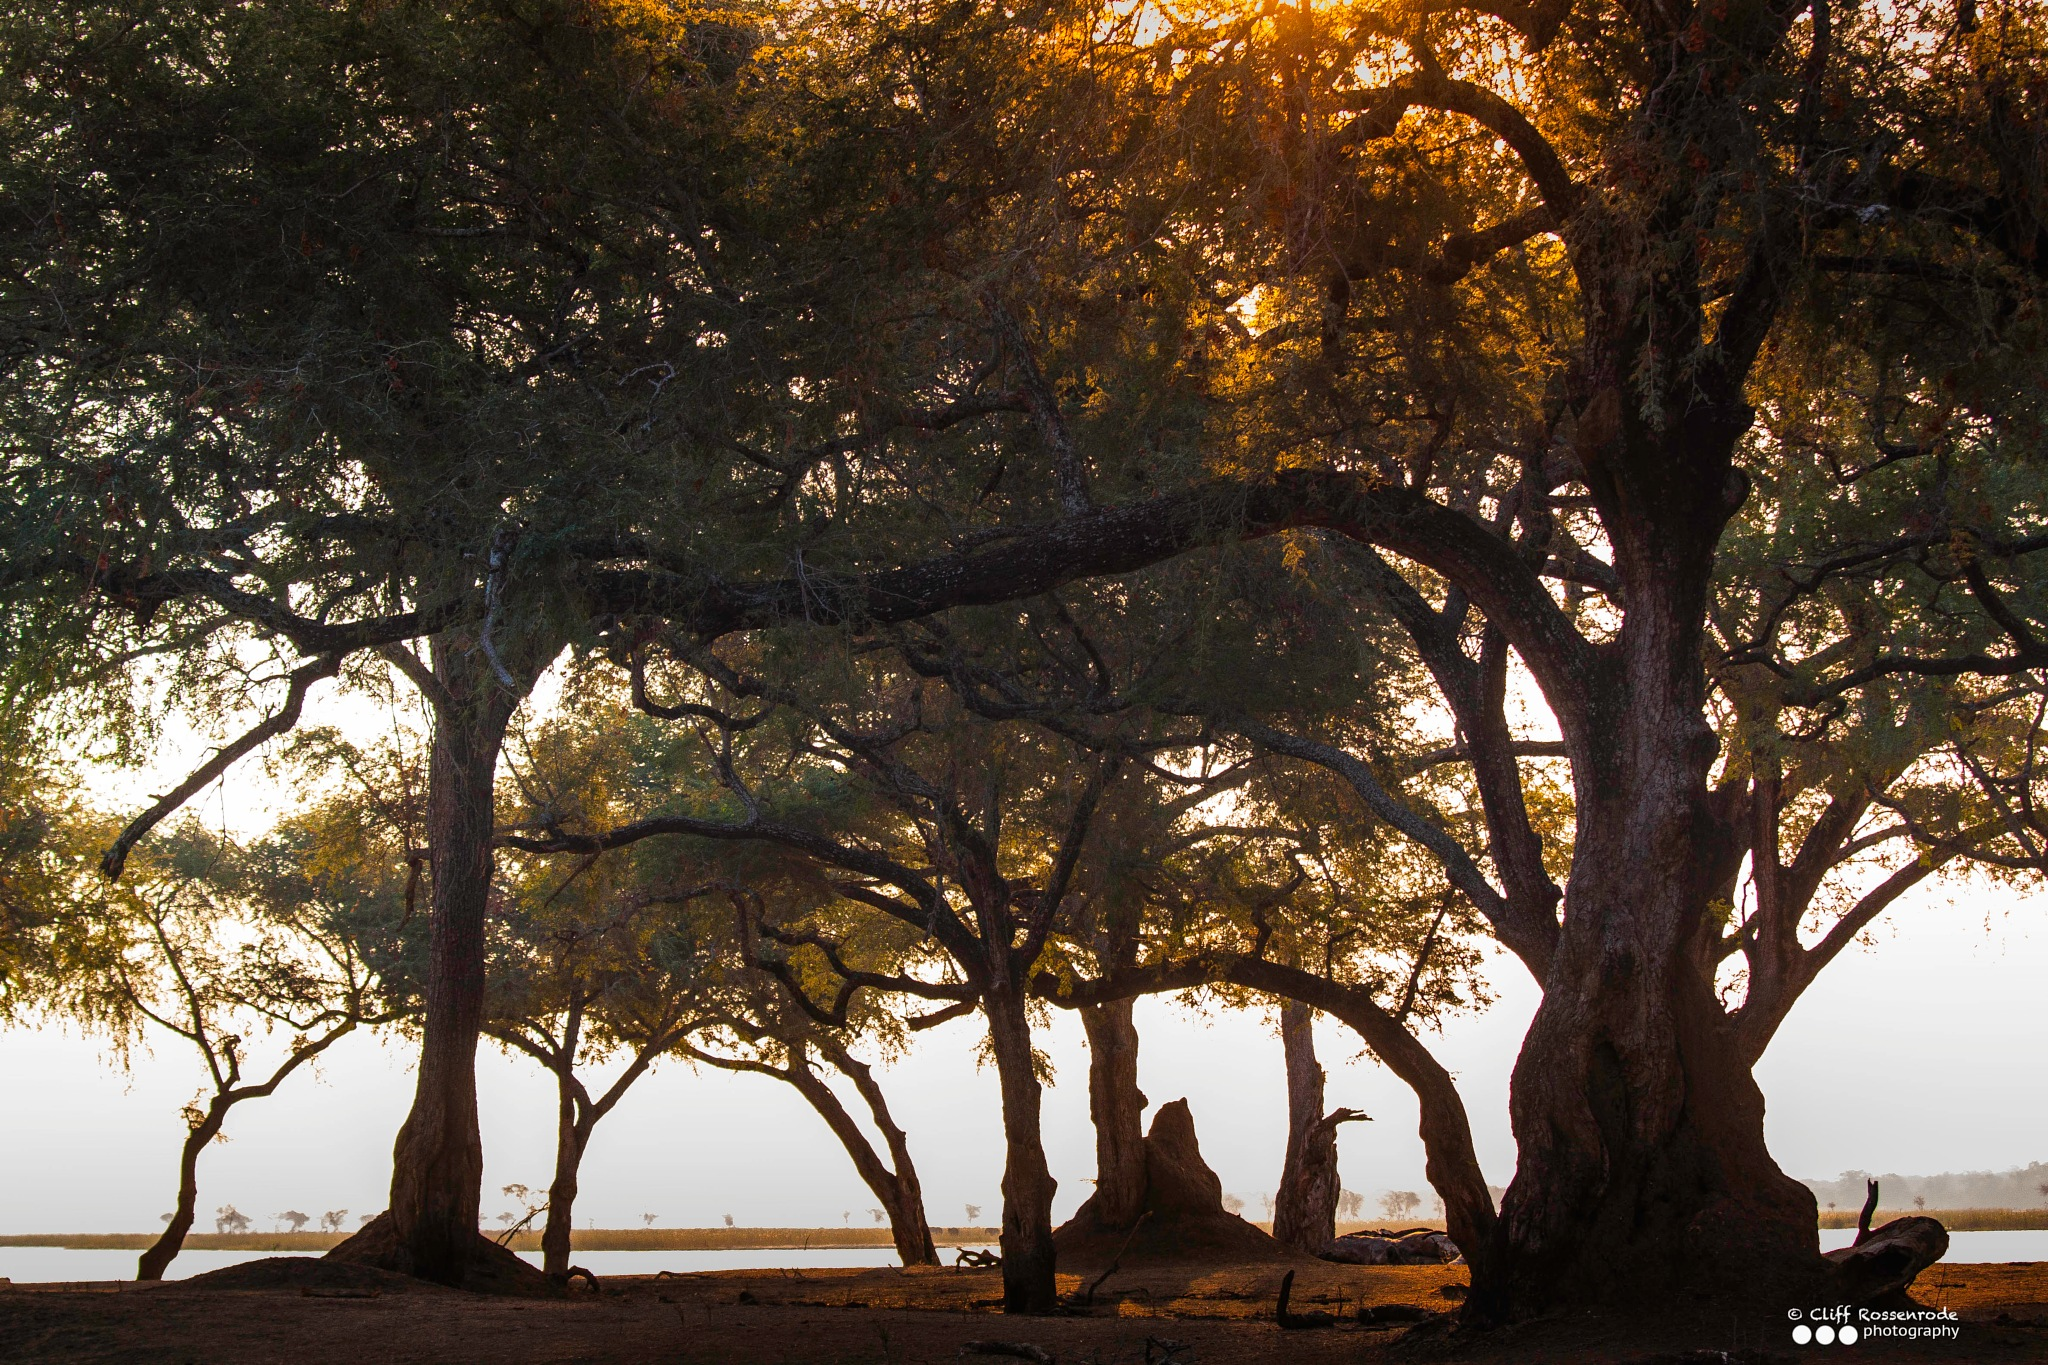 Tree silhouettes02  by Cliff Rossenrode